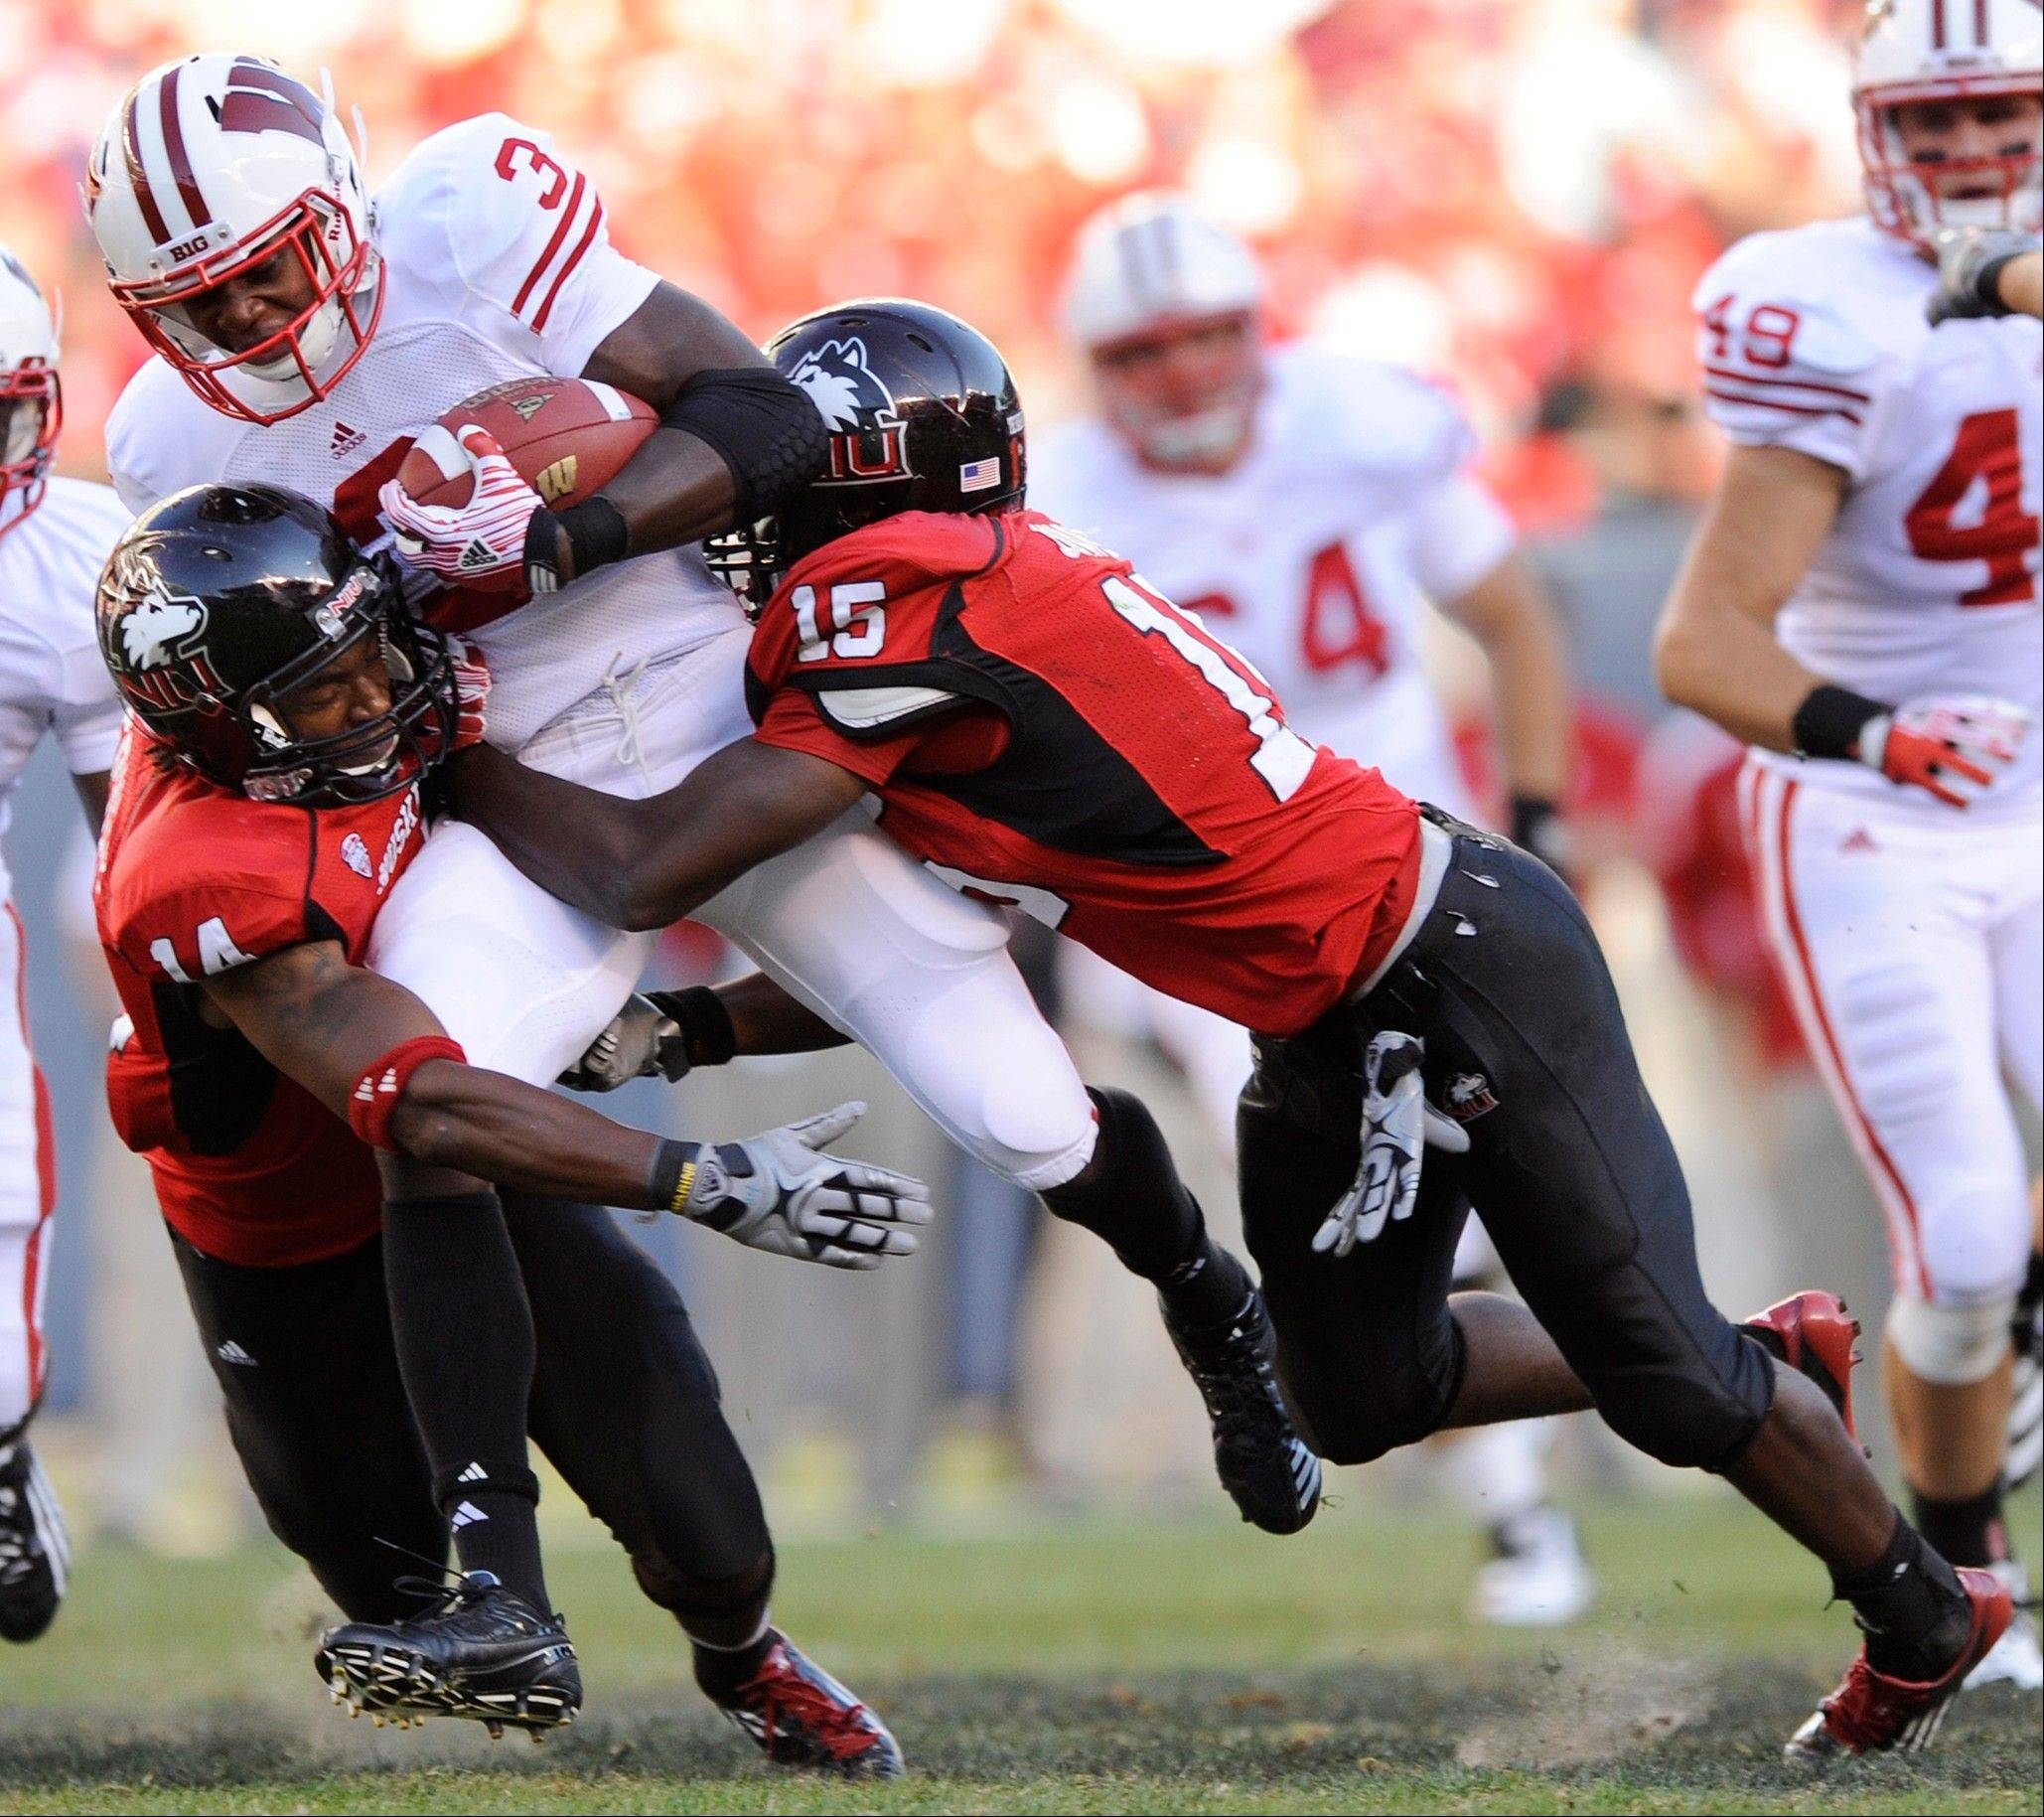 Wisconsin's Melvin Gordon (3) is tackled by Northern Illinois' Courtney Stephen, left, and Jimmie Ward during the fourth quarter of the Badgers' 49-7 victory last week. NIU ranks dead last in the MAC in rushing defense and pass efficiency defense.